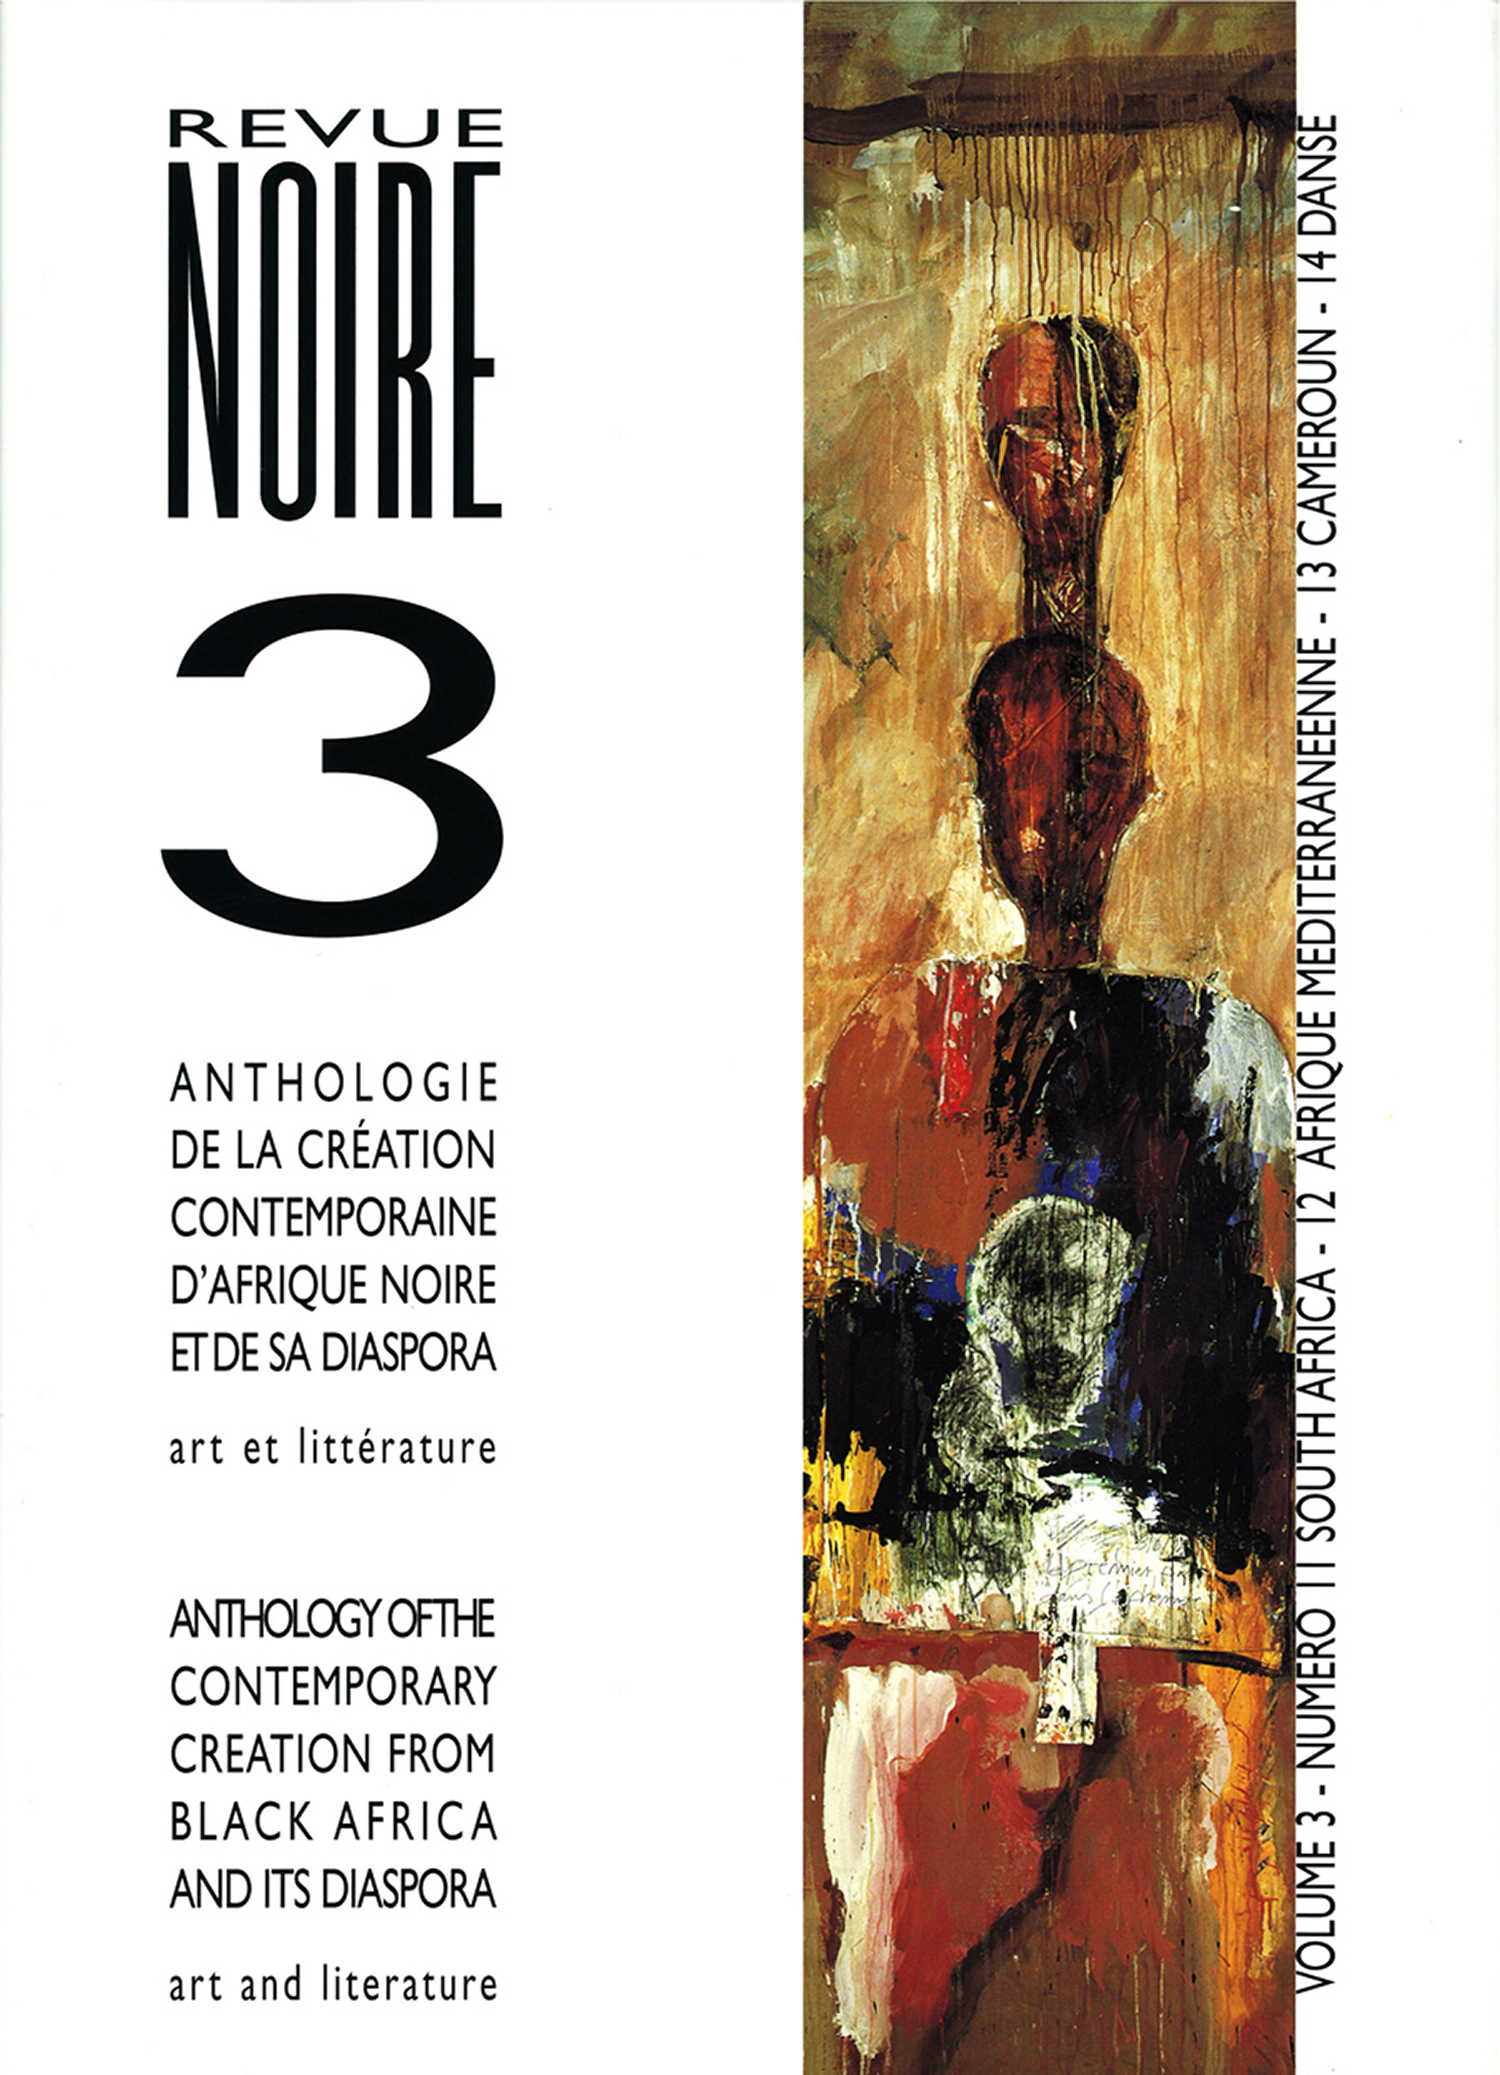 Book 'Anthology Revue Noire Magazine Vol. 03' issues 11 to 14